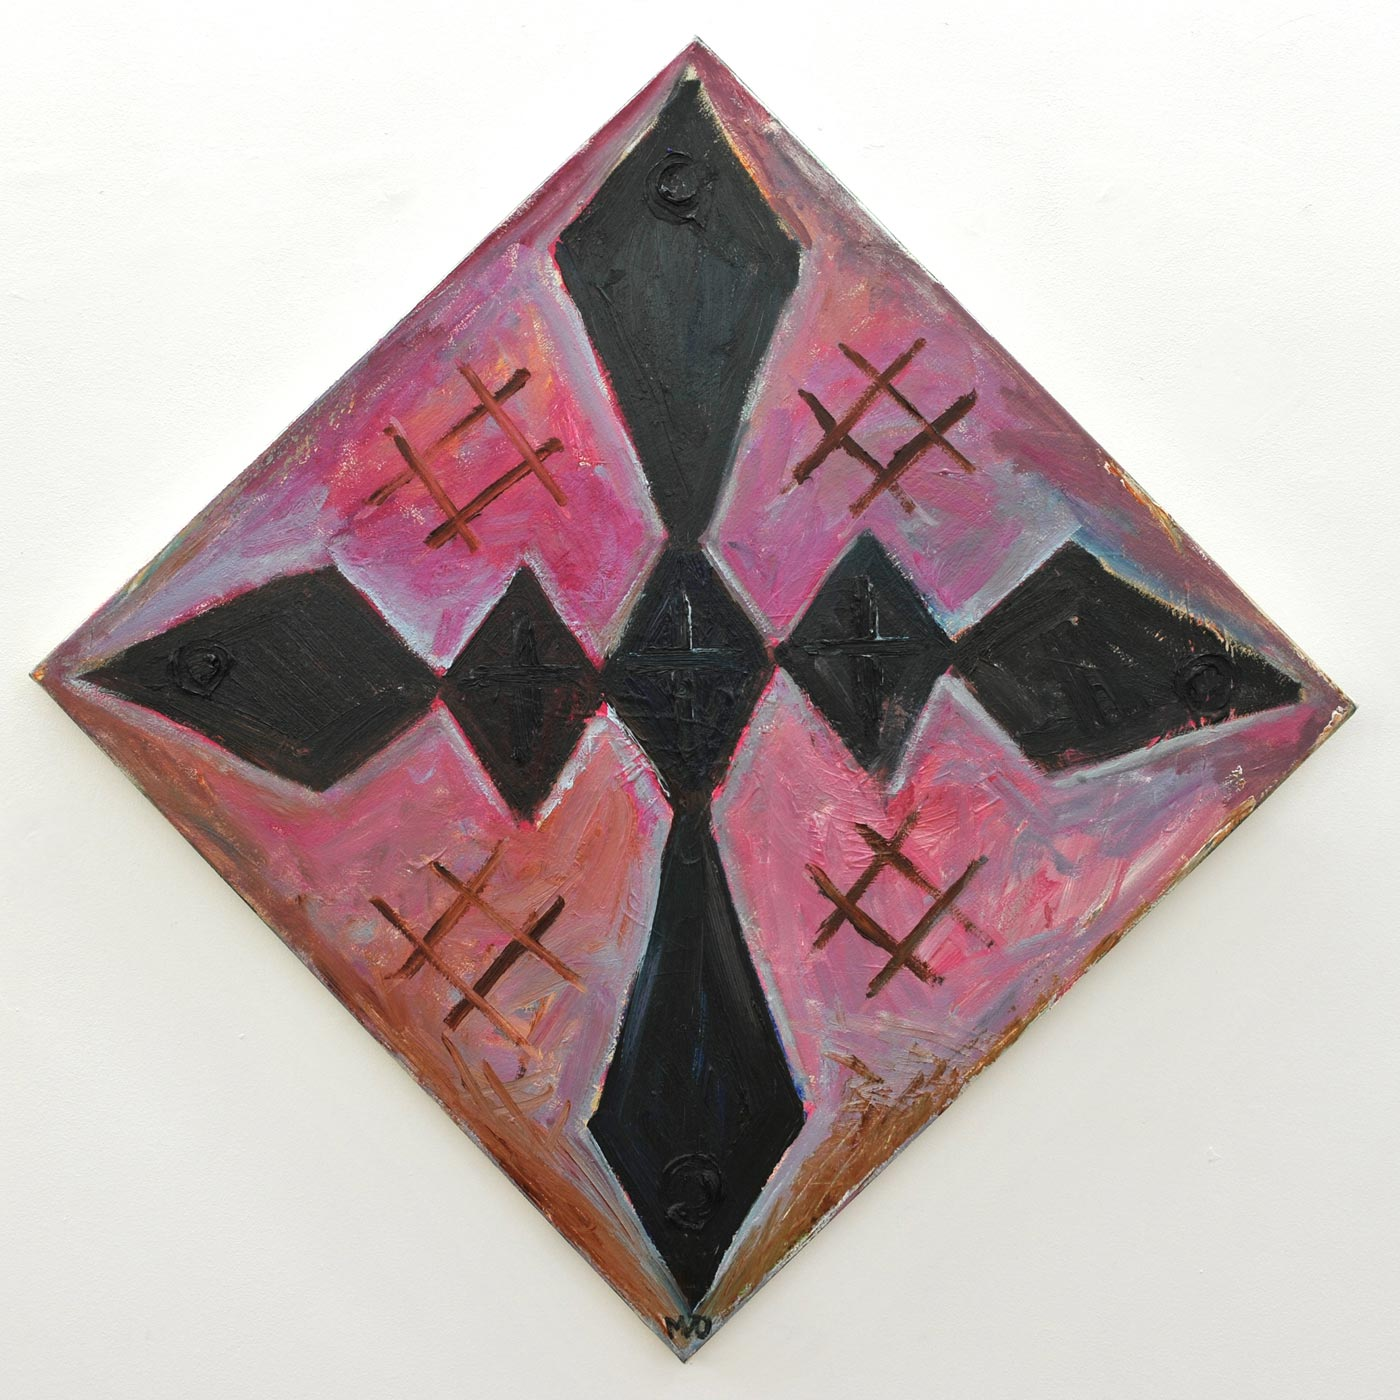 Manuel  Ocampo - Brown Cross with 4 Cross-Hatch, 2013